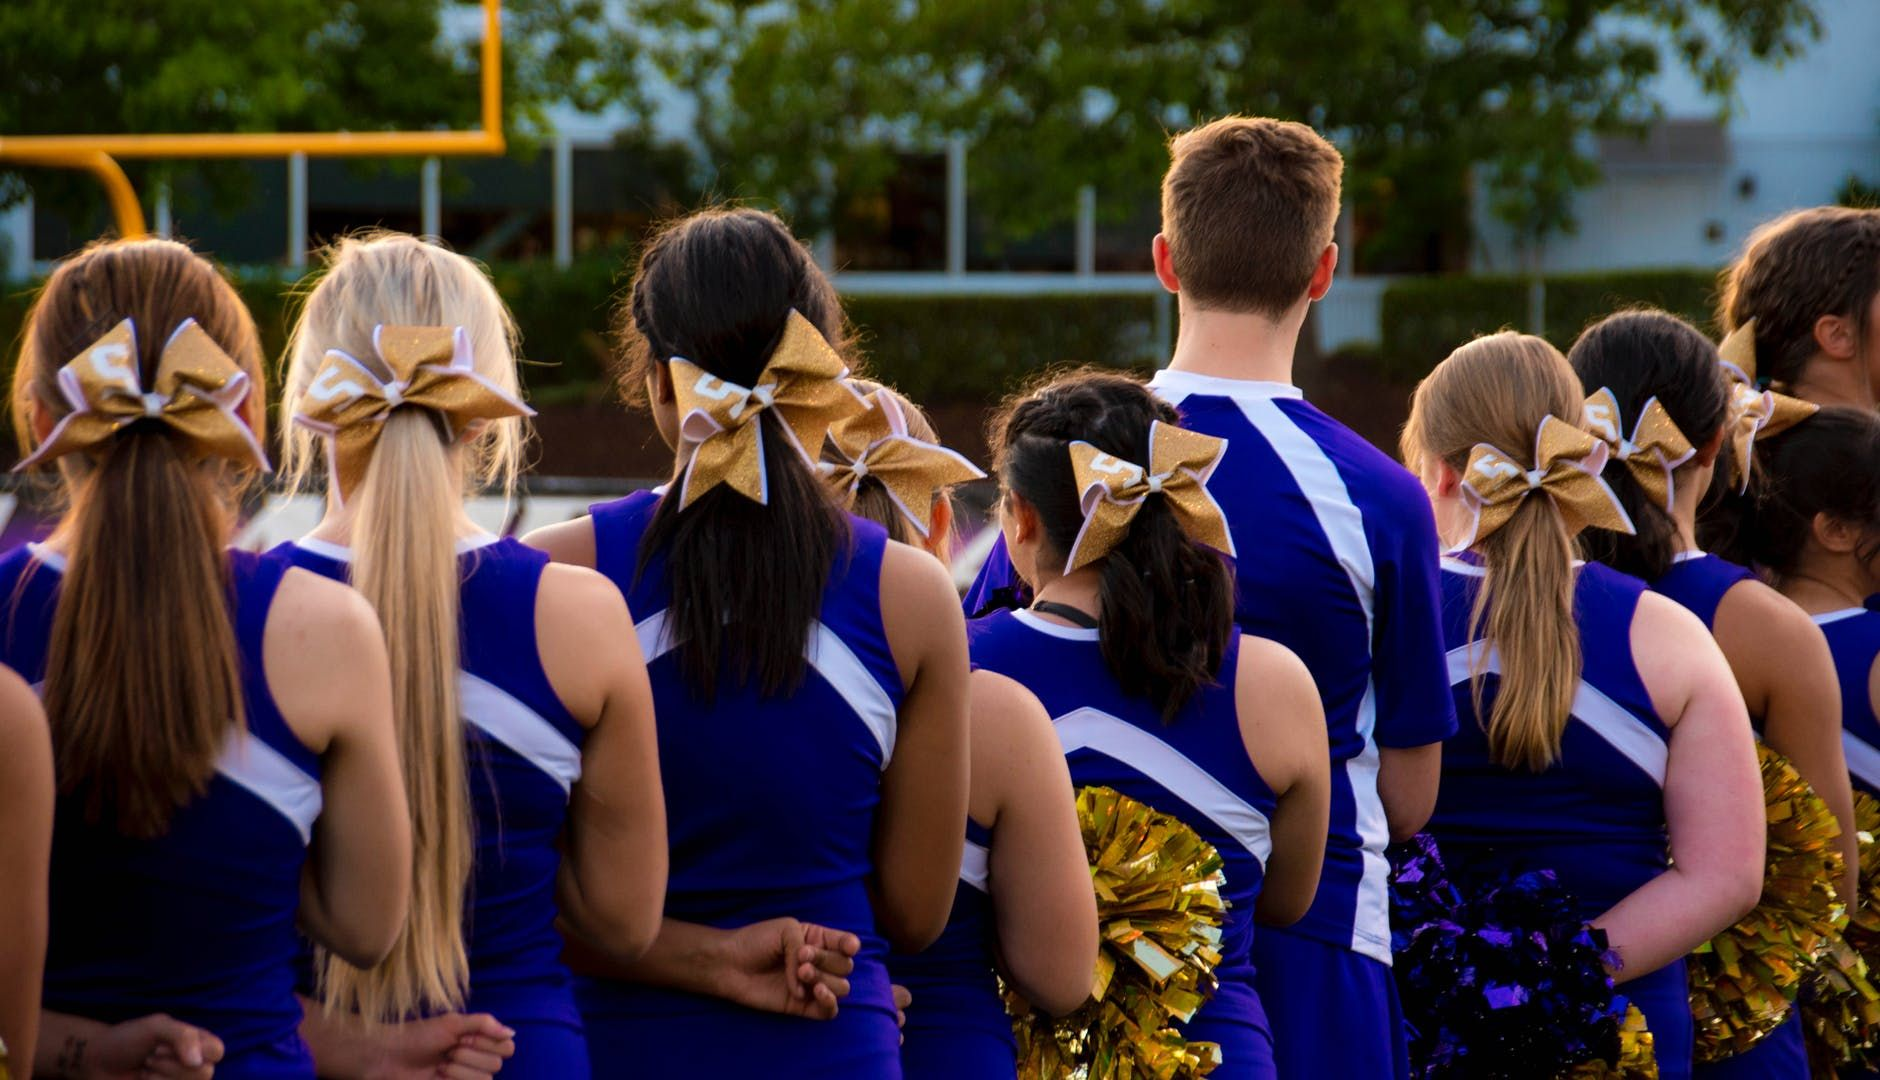 Cheerleaders wearing blue and white unfirom with gold bow and gold pompoms